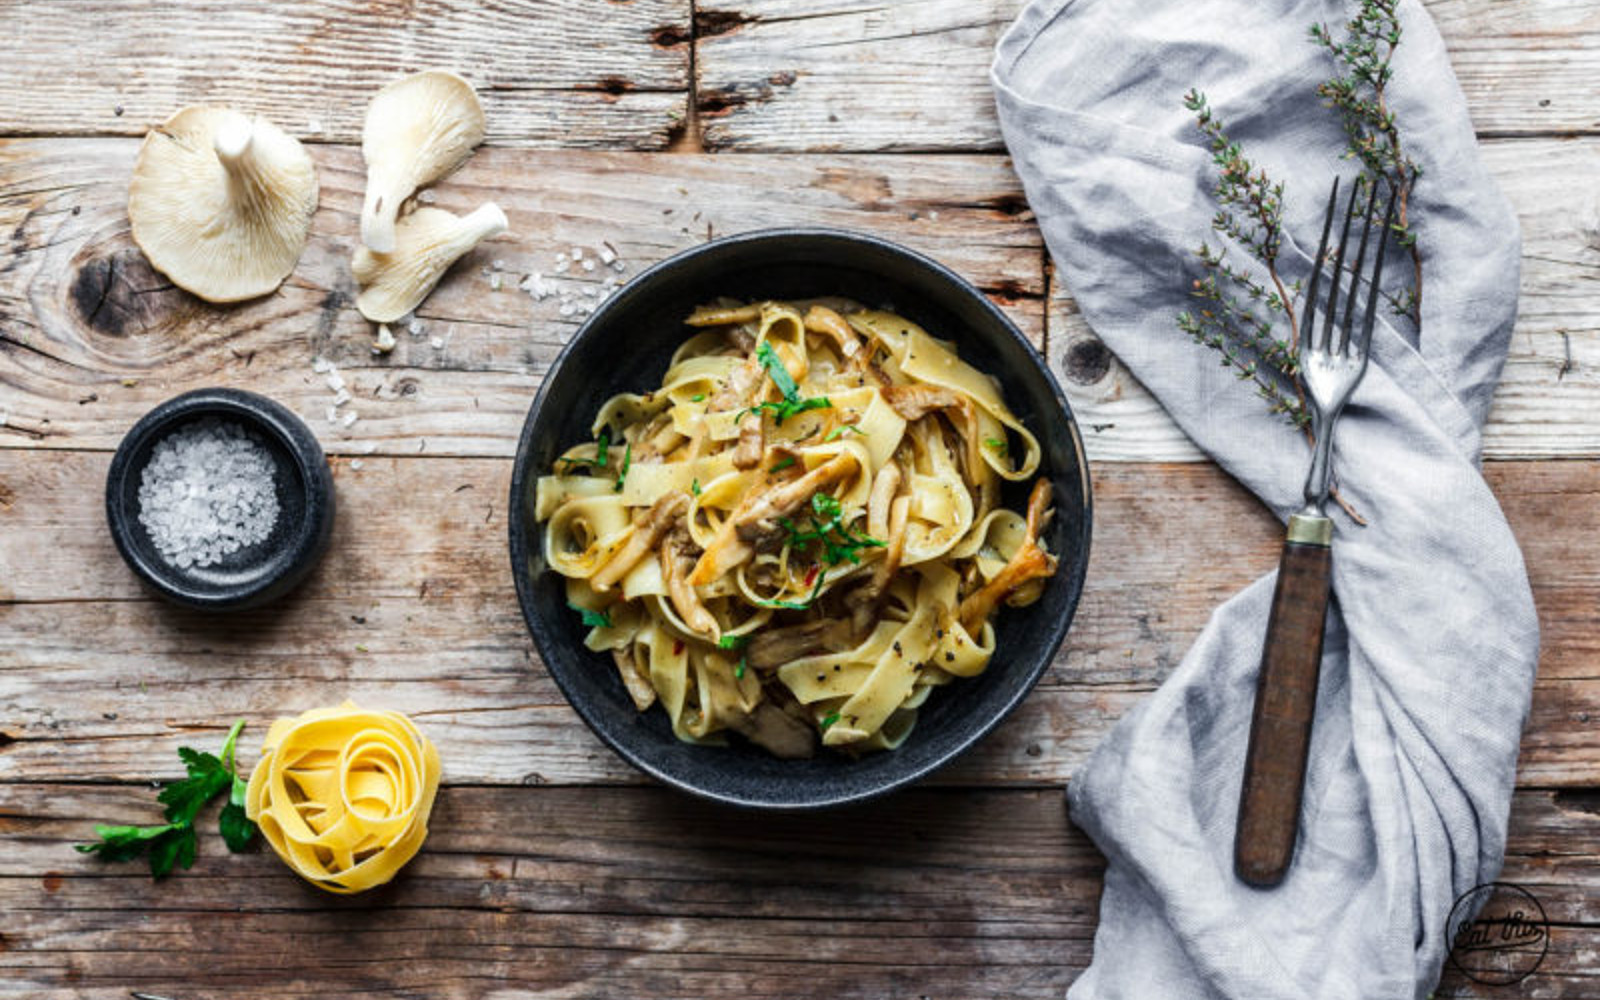 Fettuccine With Oyster Mushrooms and Thyme